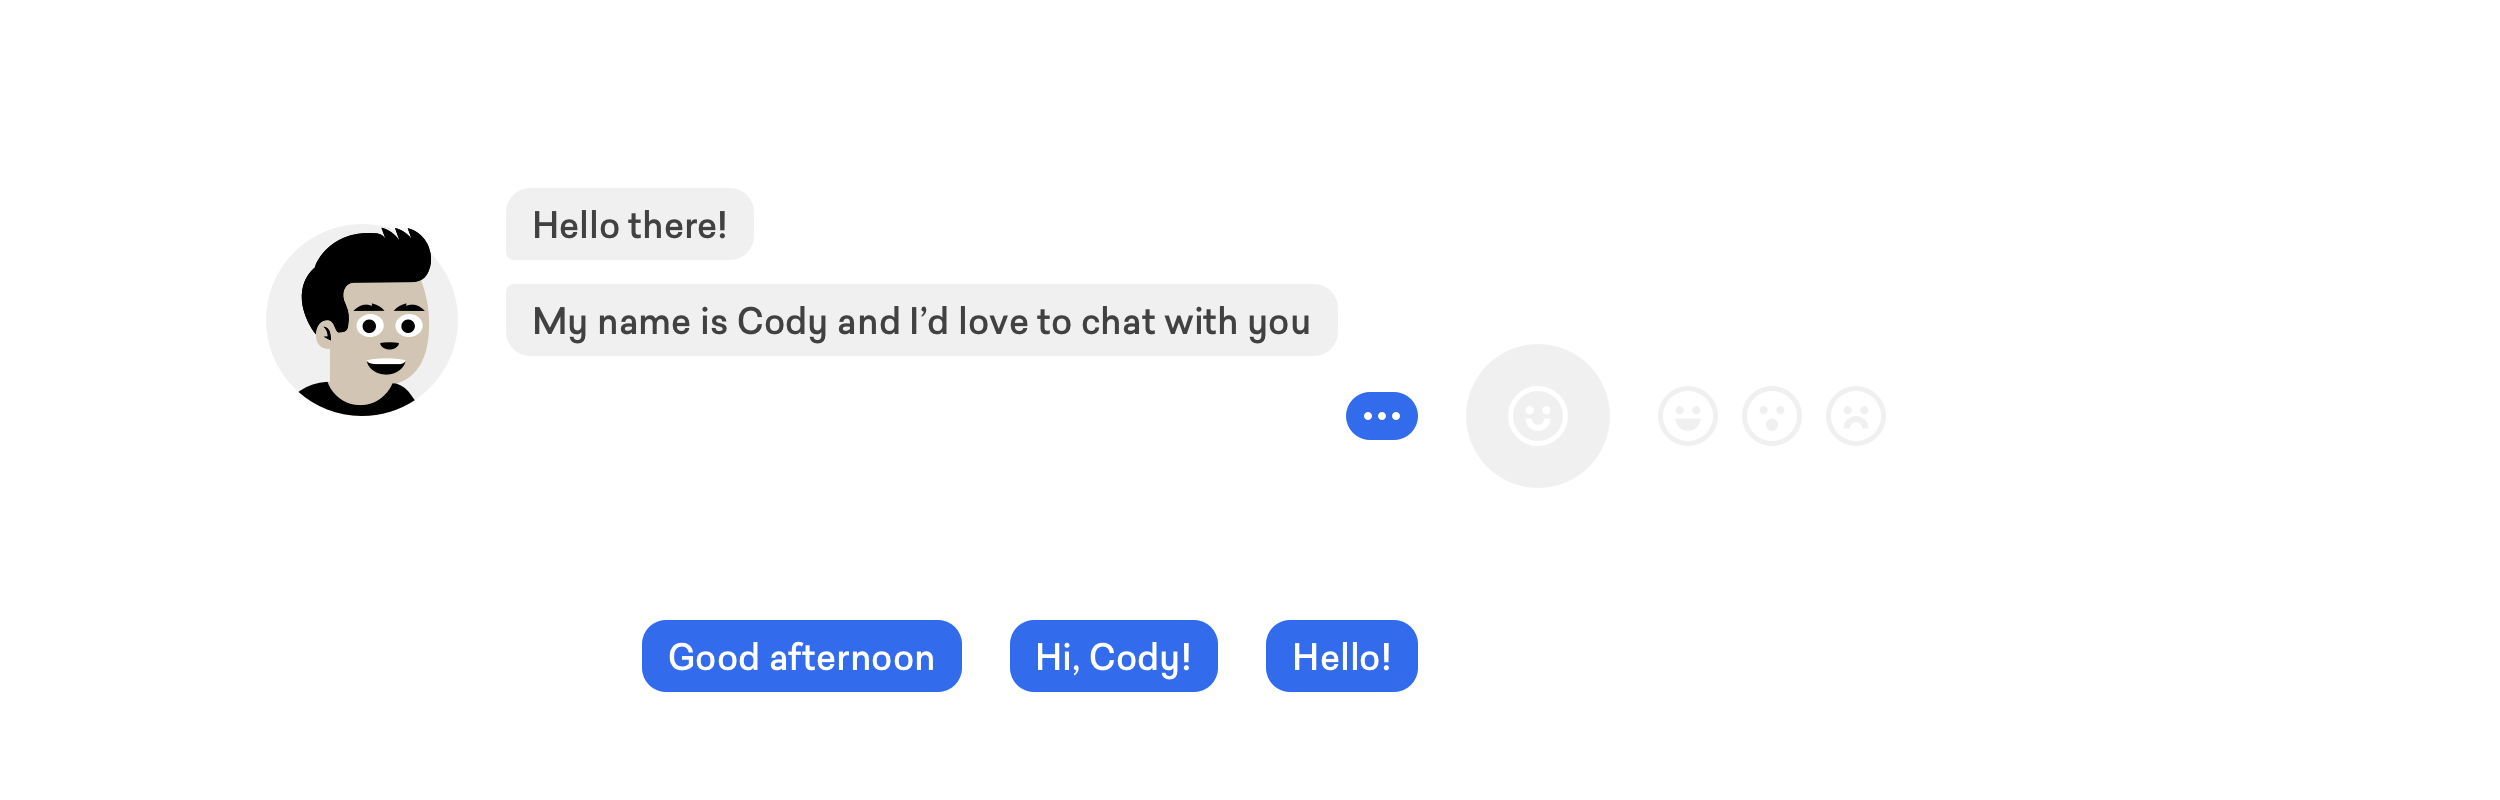 i love to chat with you